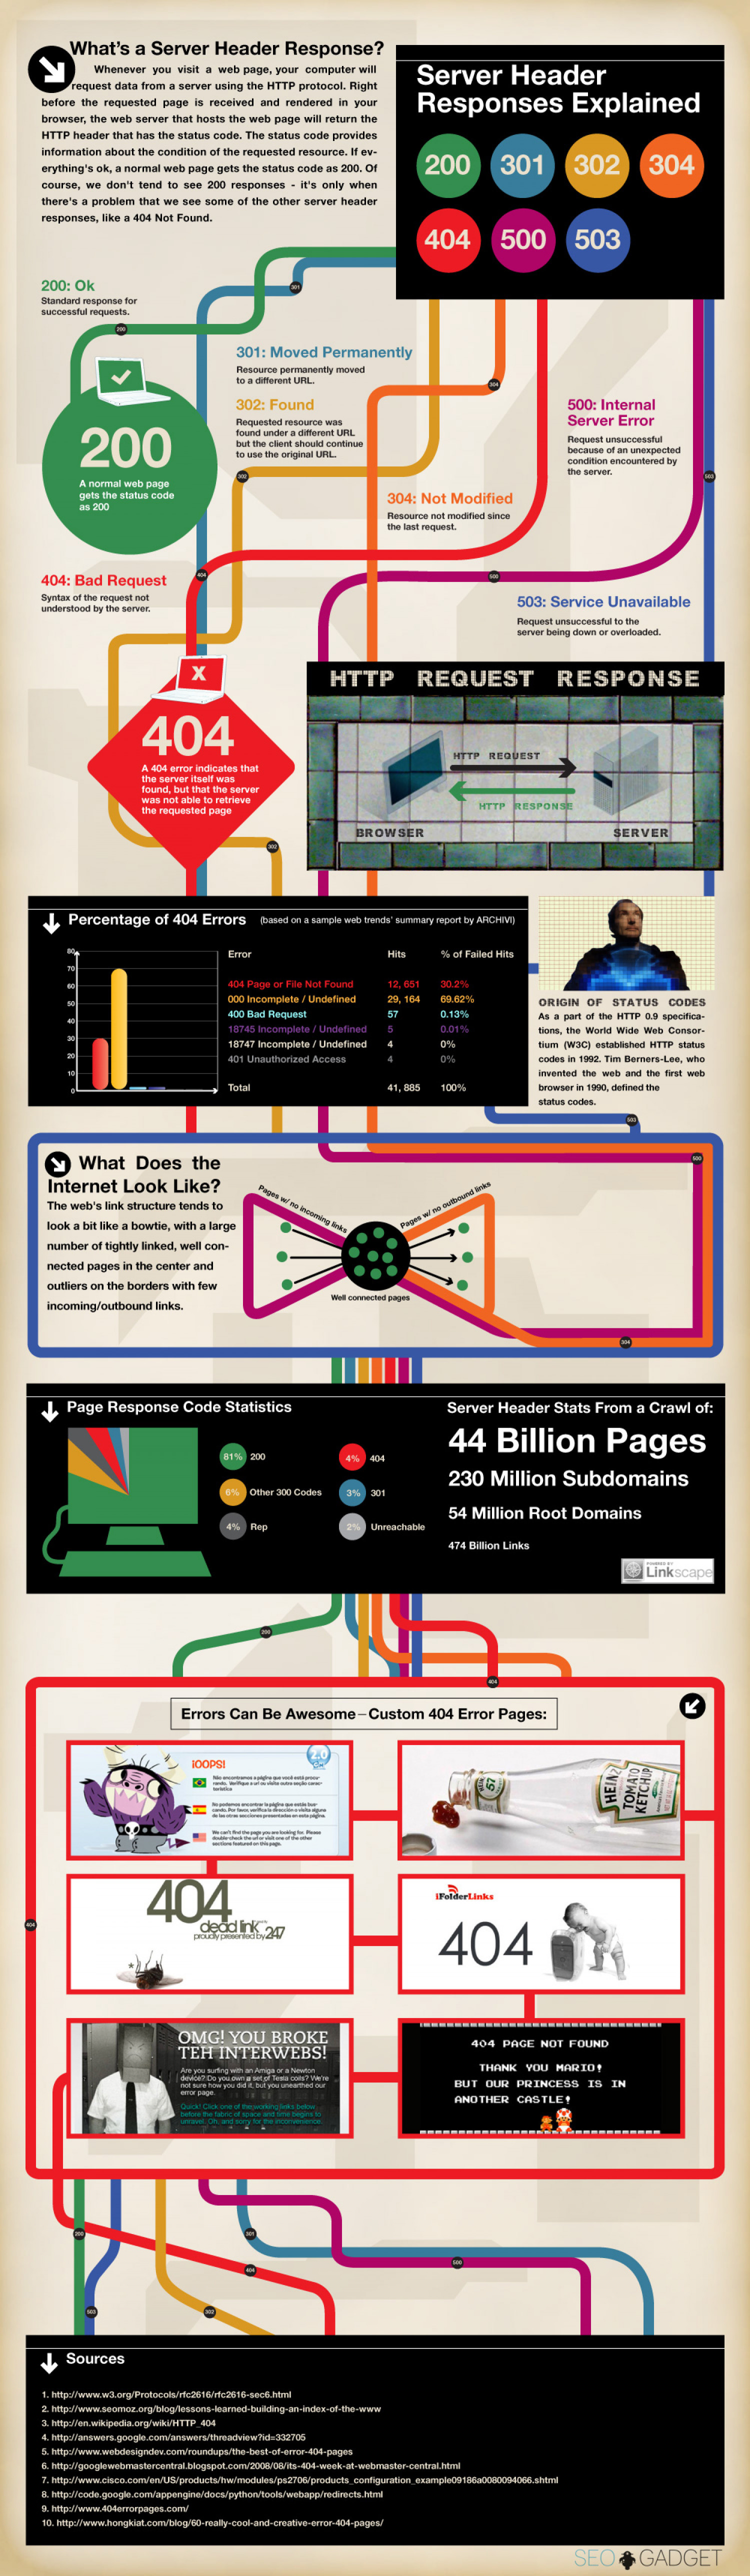 What is a Server Header Response? Infographic